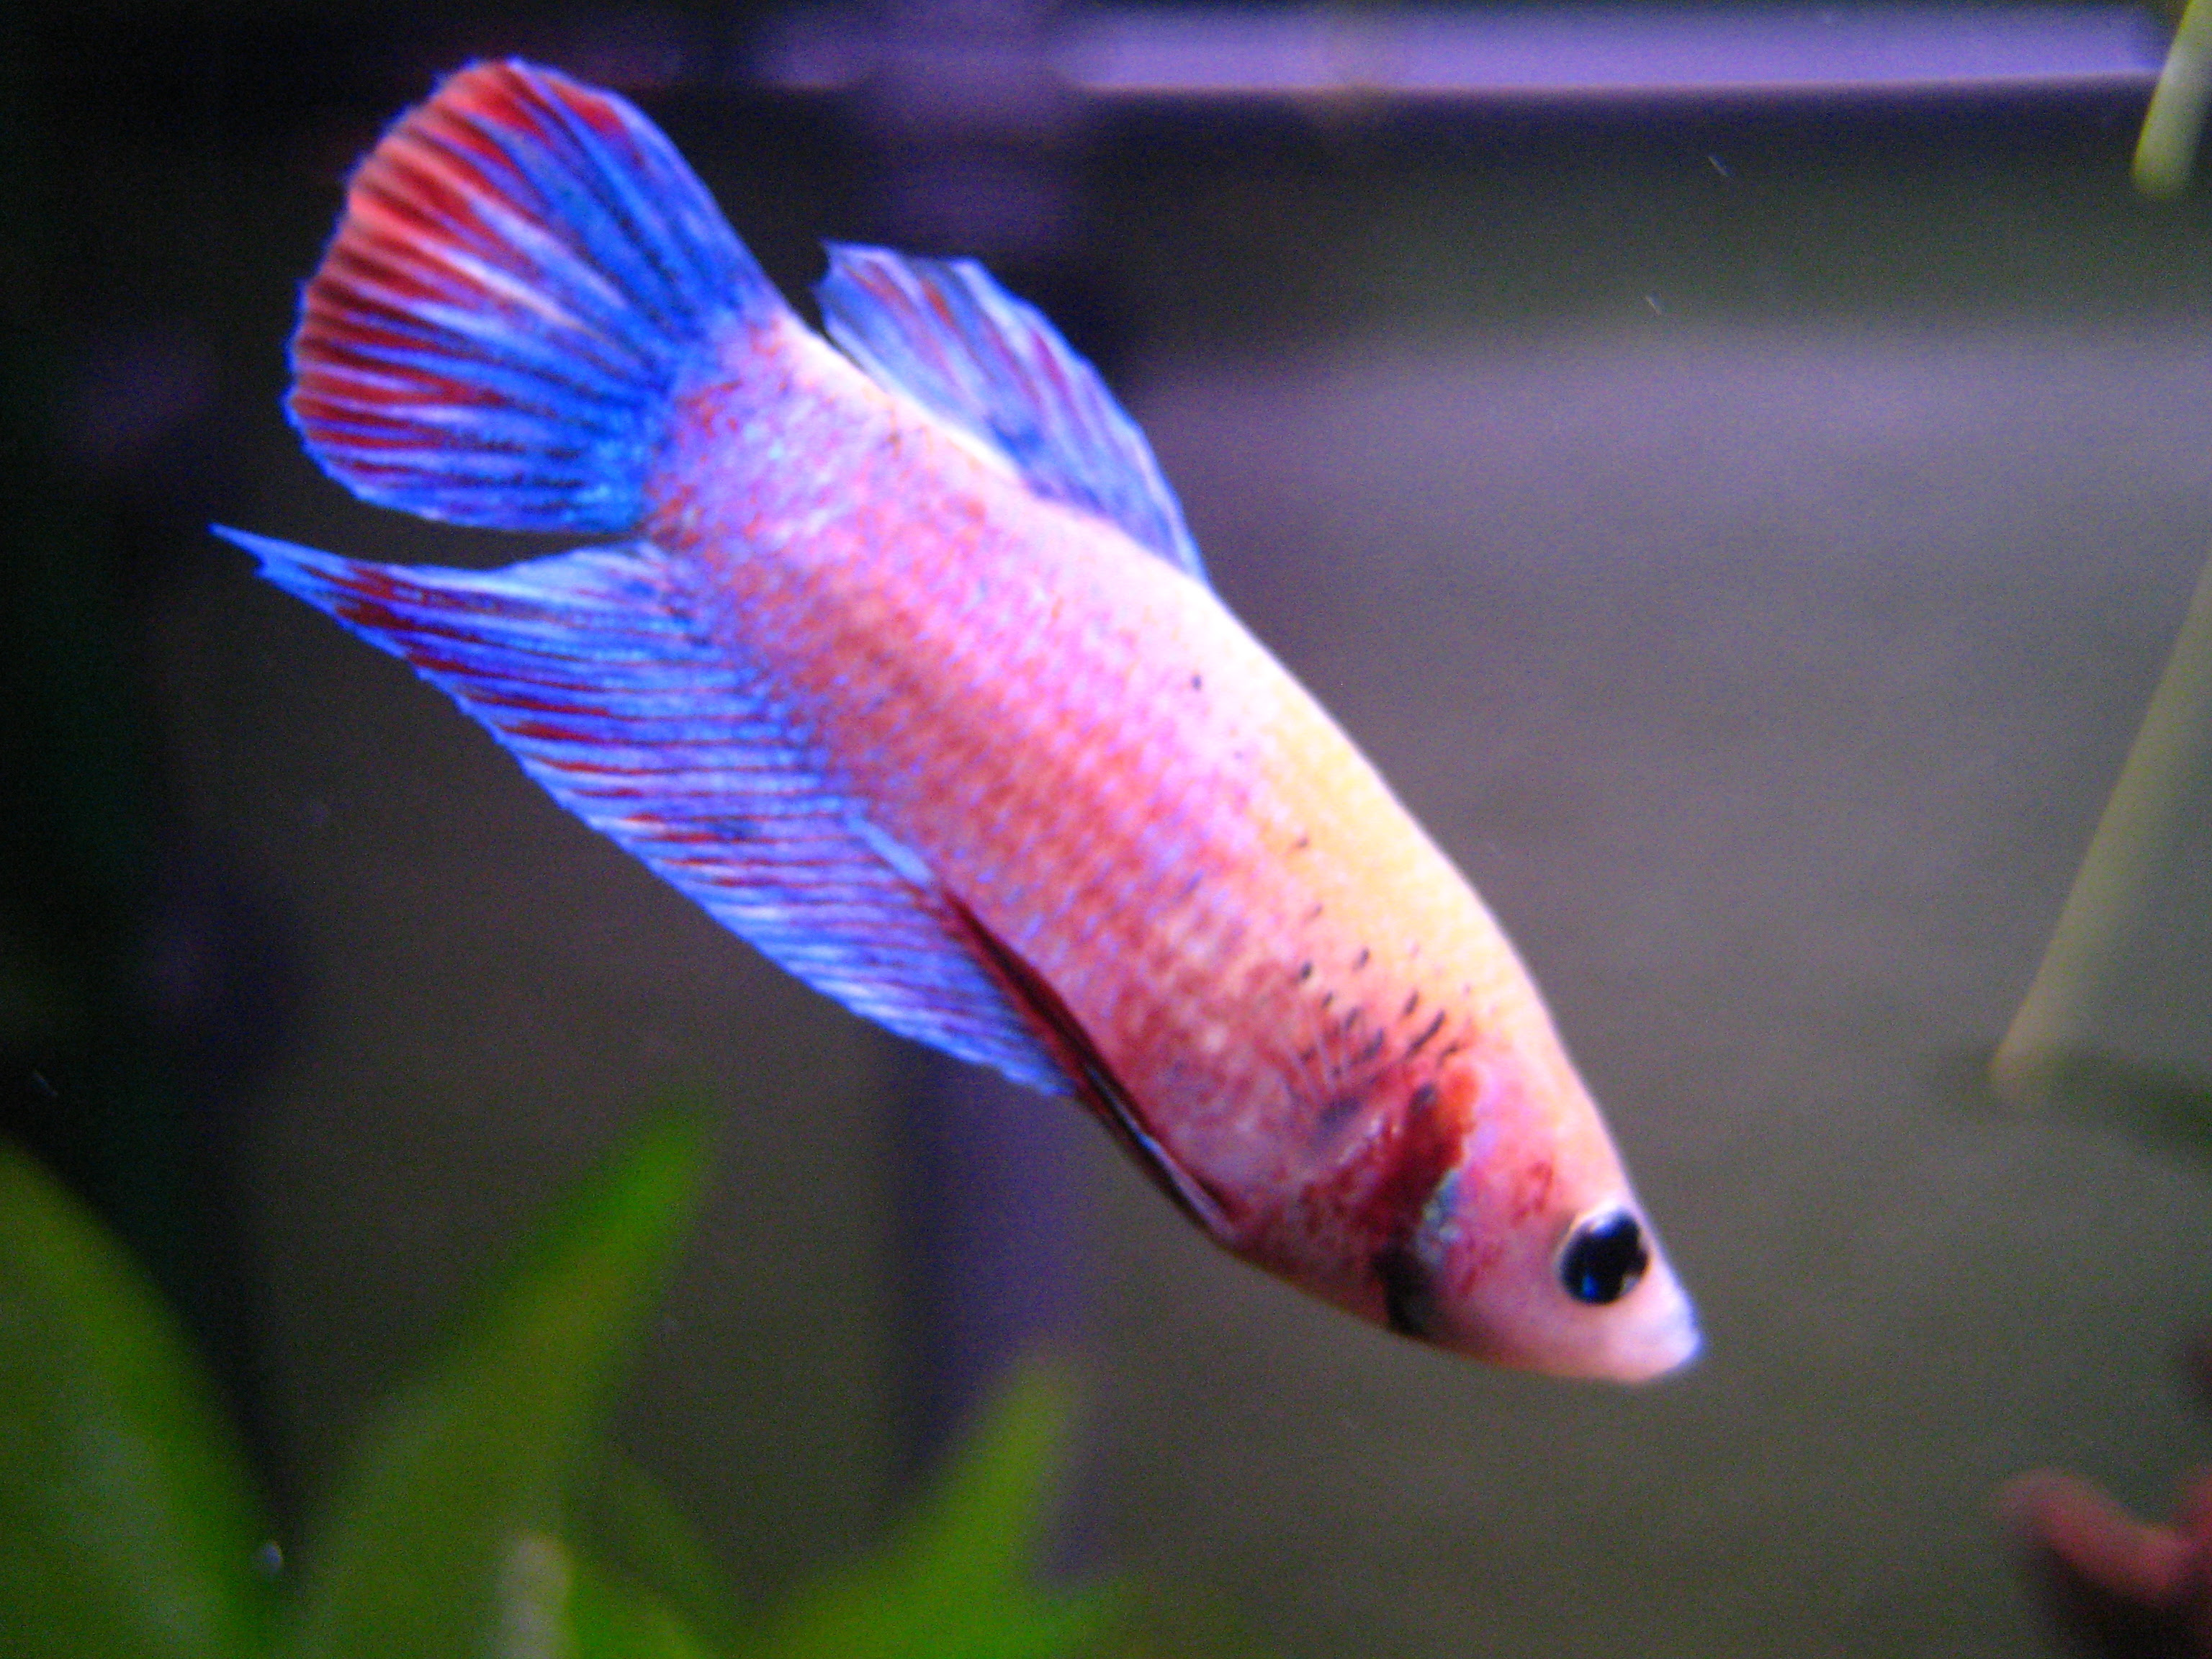 http://upload.wikimedia.org/wikipedia/commons/0/0a/Betta_splendens_%28w%29_t%C3%BCrkis-pink.JPG